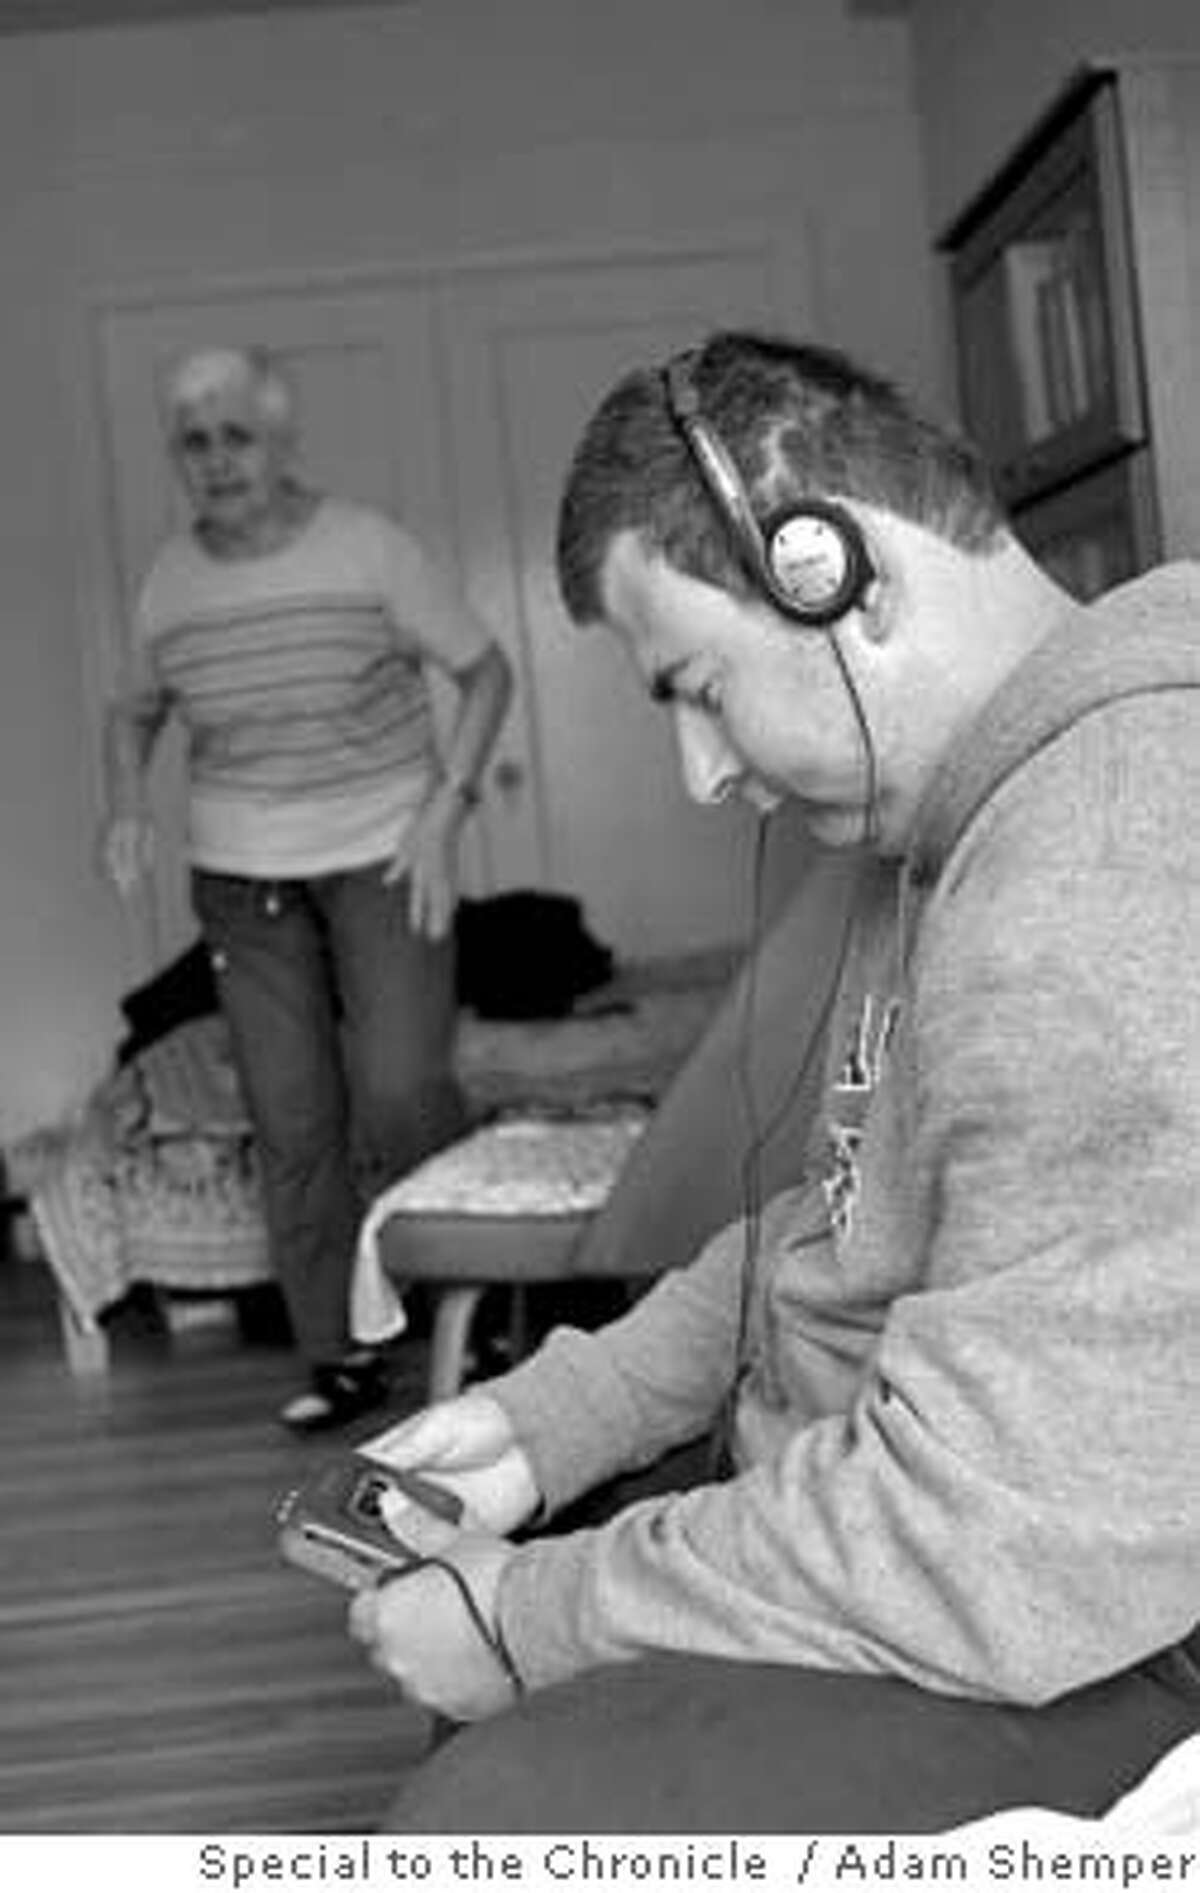 Stan listens to Madonna on his headphones at his mother's apartment. On the weekends he visits his mother, Inga, who lives in a studio apartment in the Richmond district in San Francisco.